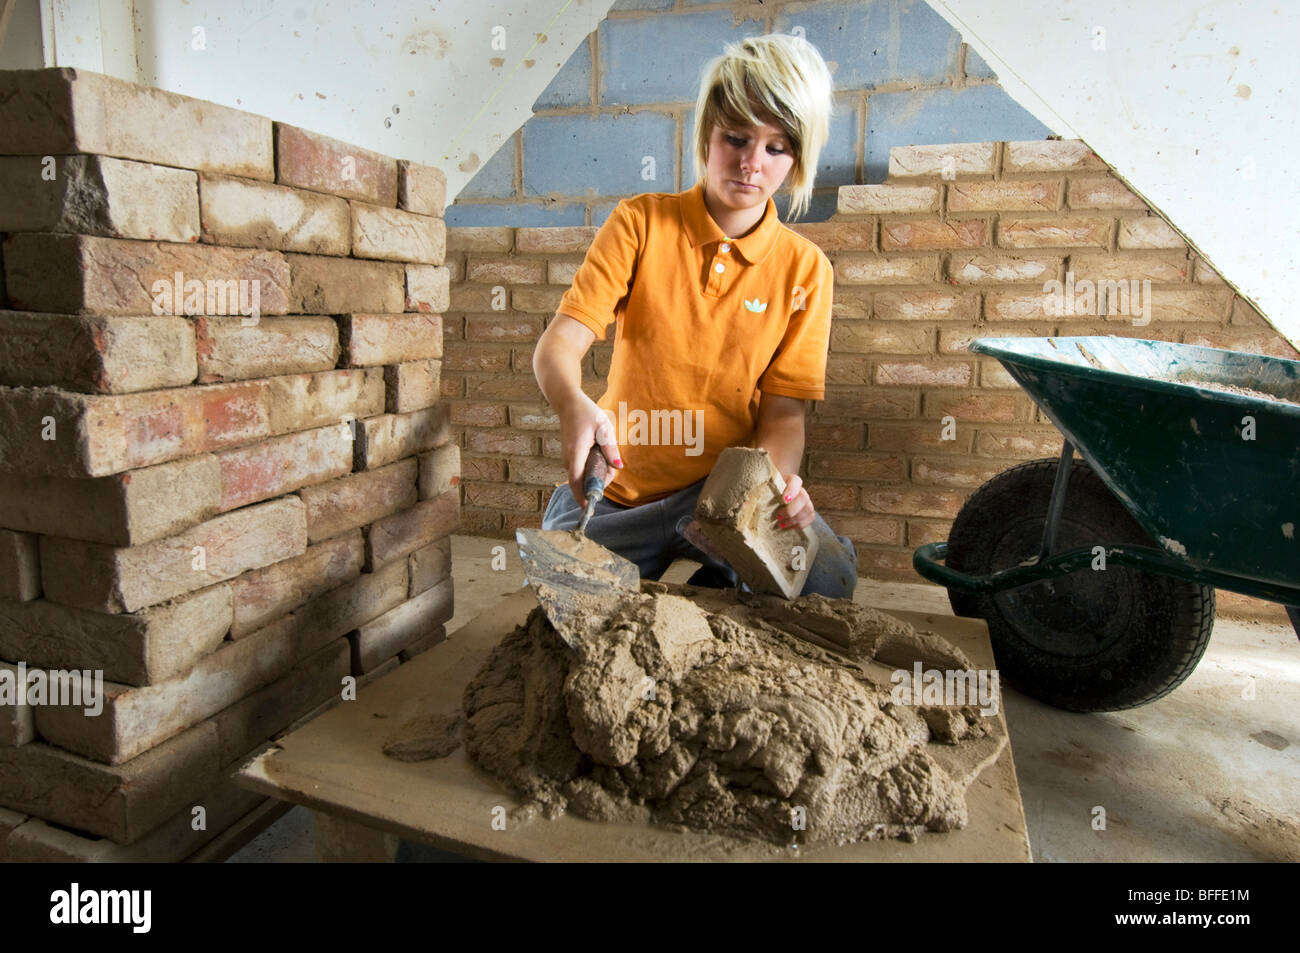 Girl student learning practical bricklaying  at a City College - Stock Image